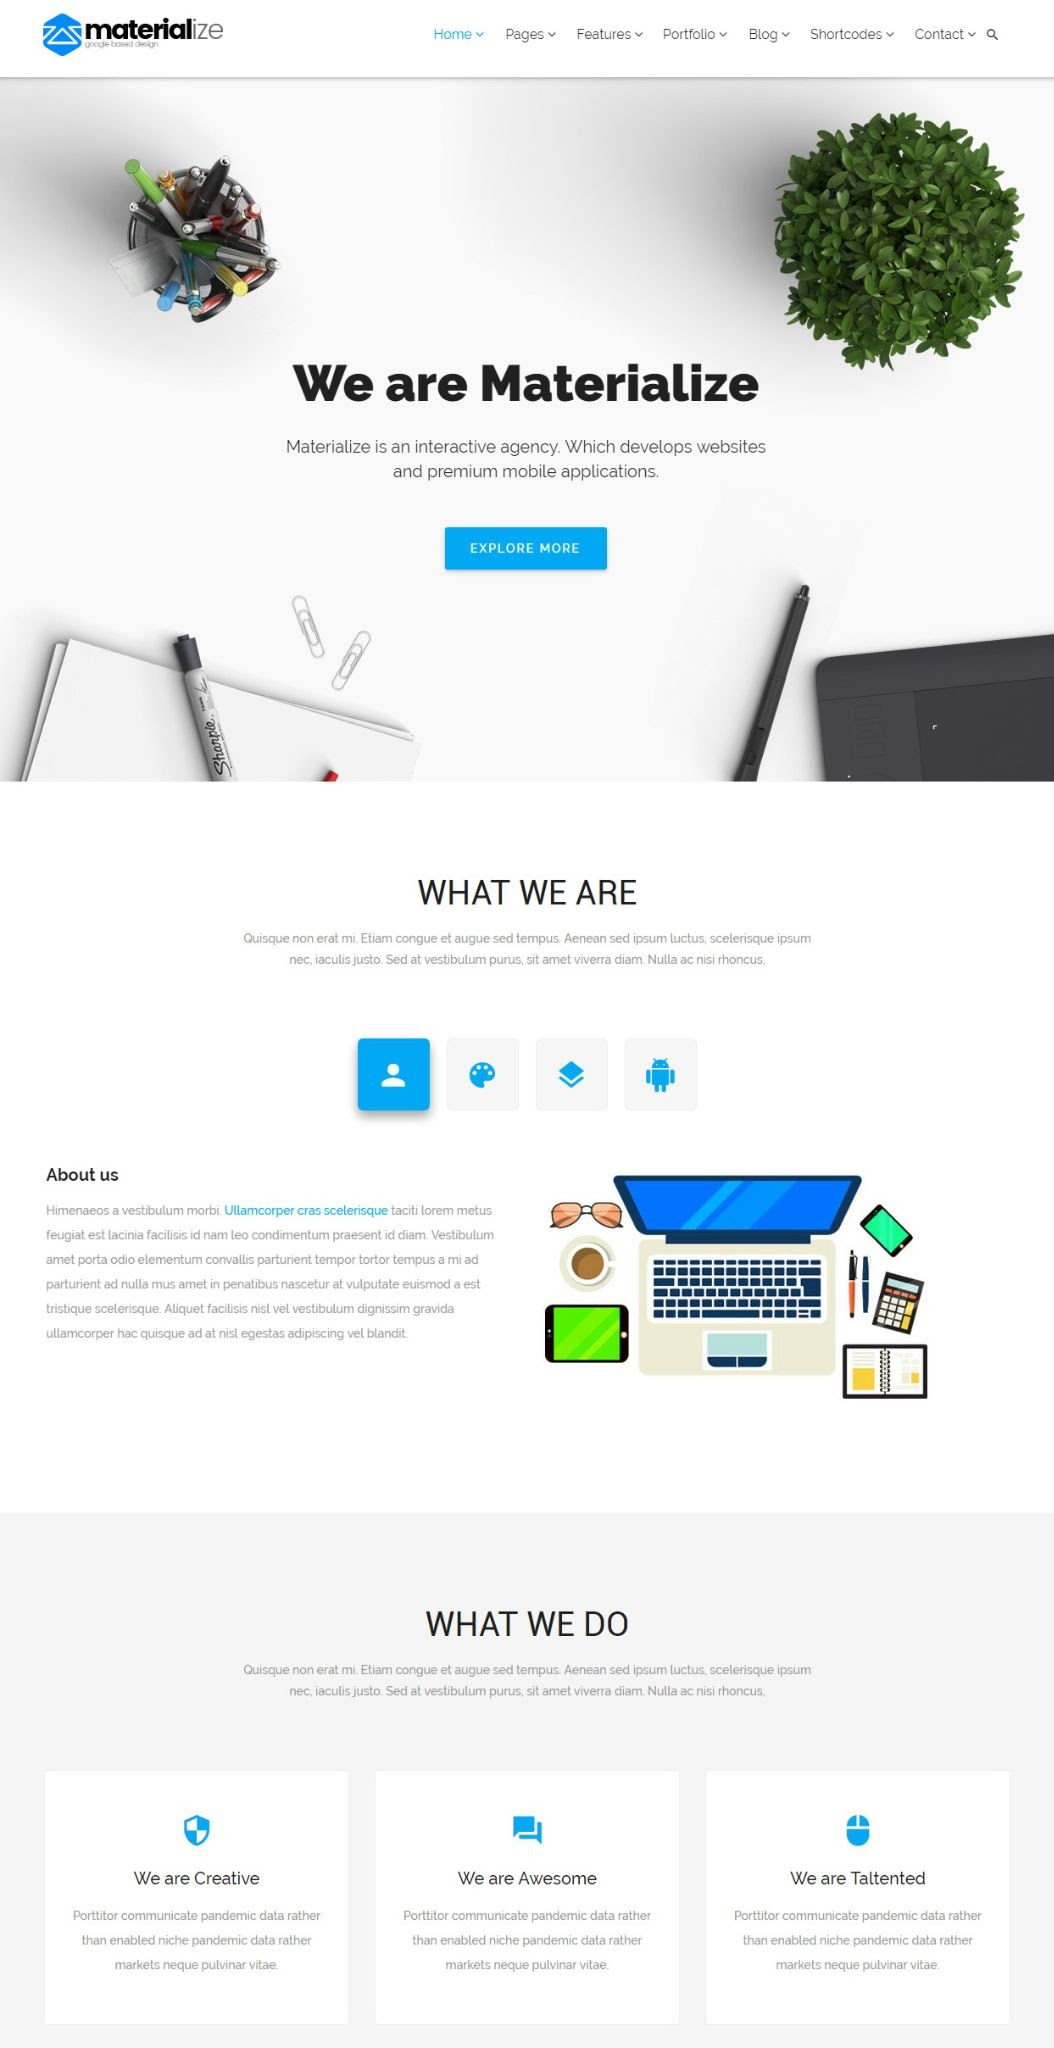 best material design wordpress theme: materialize